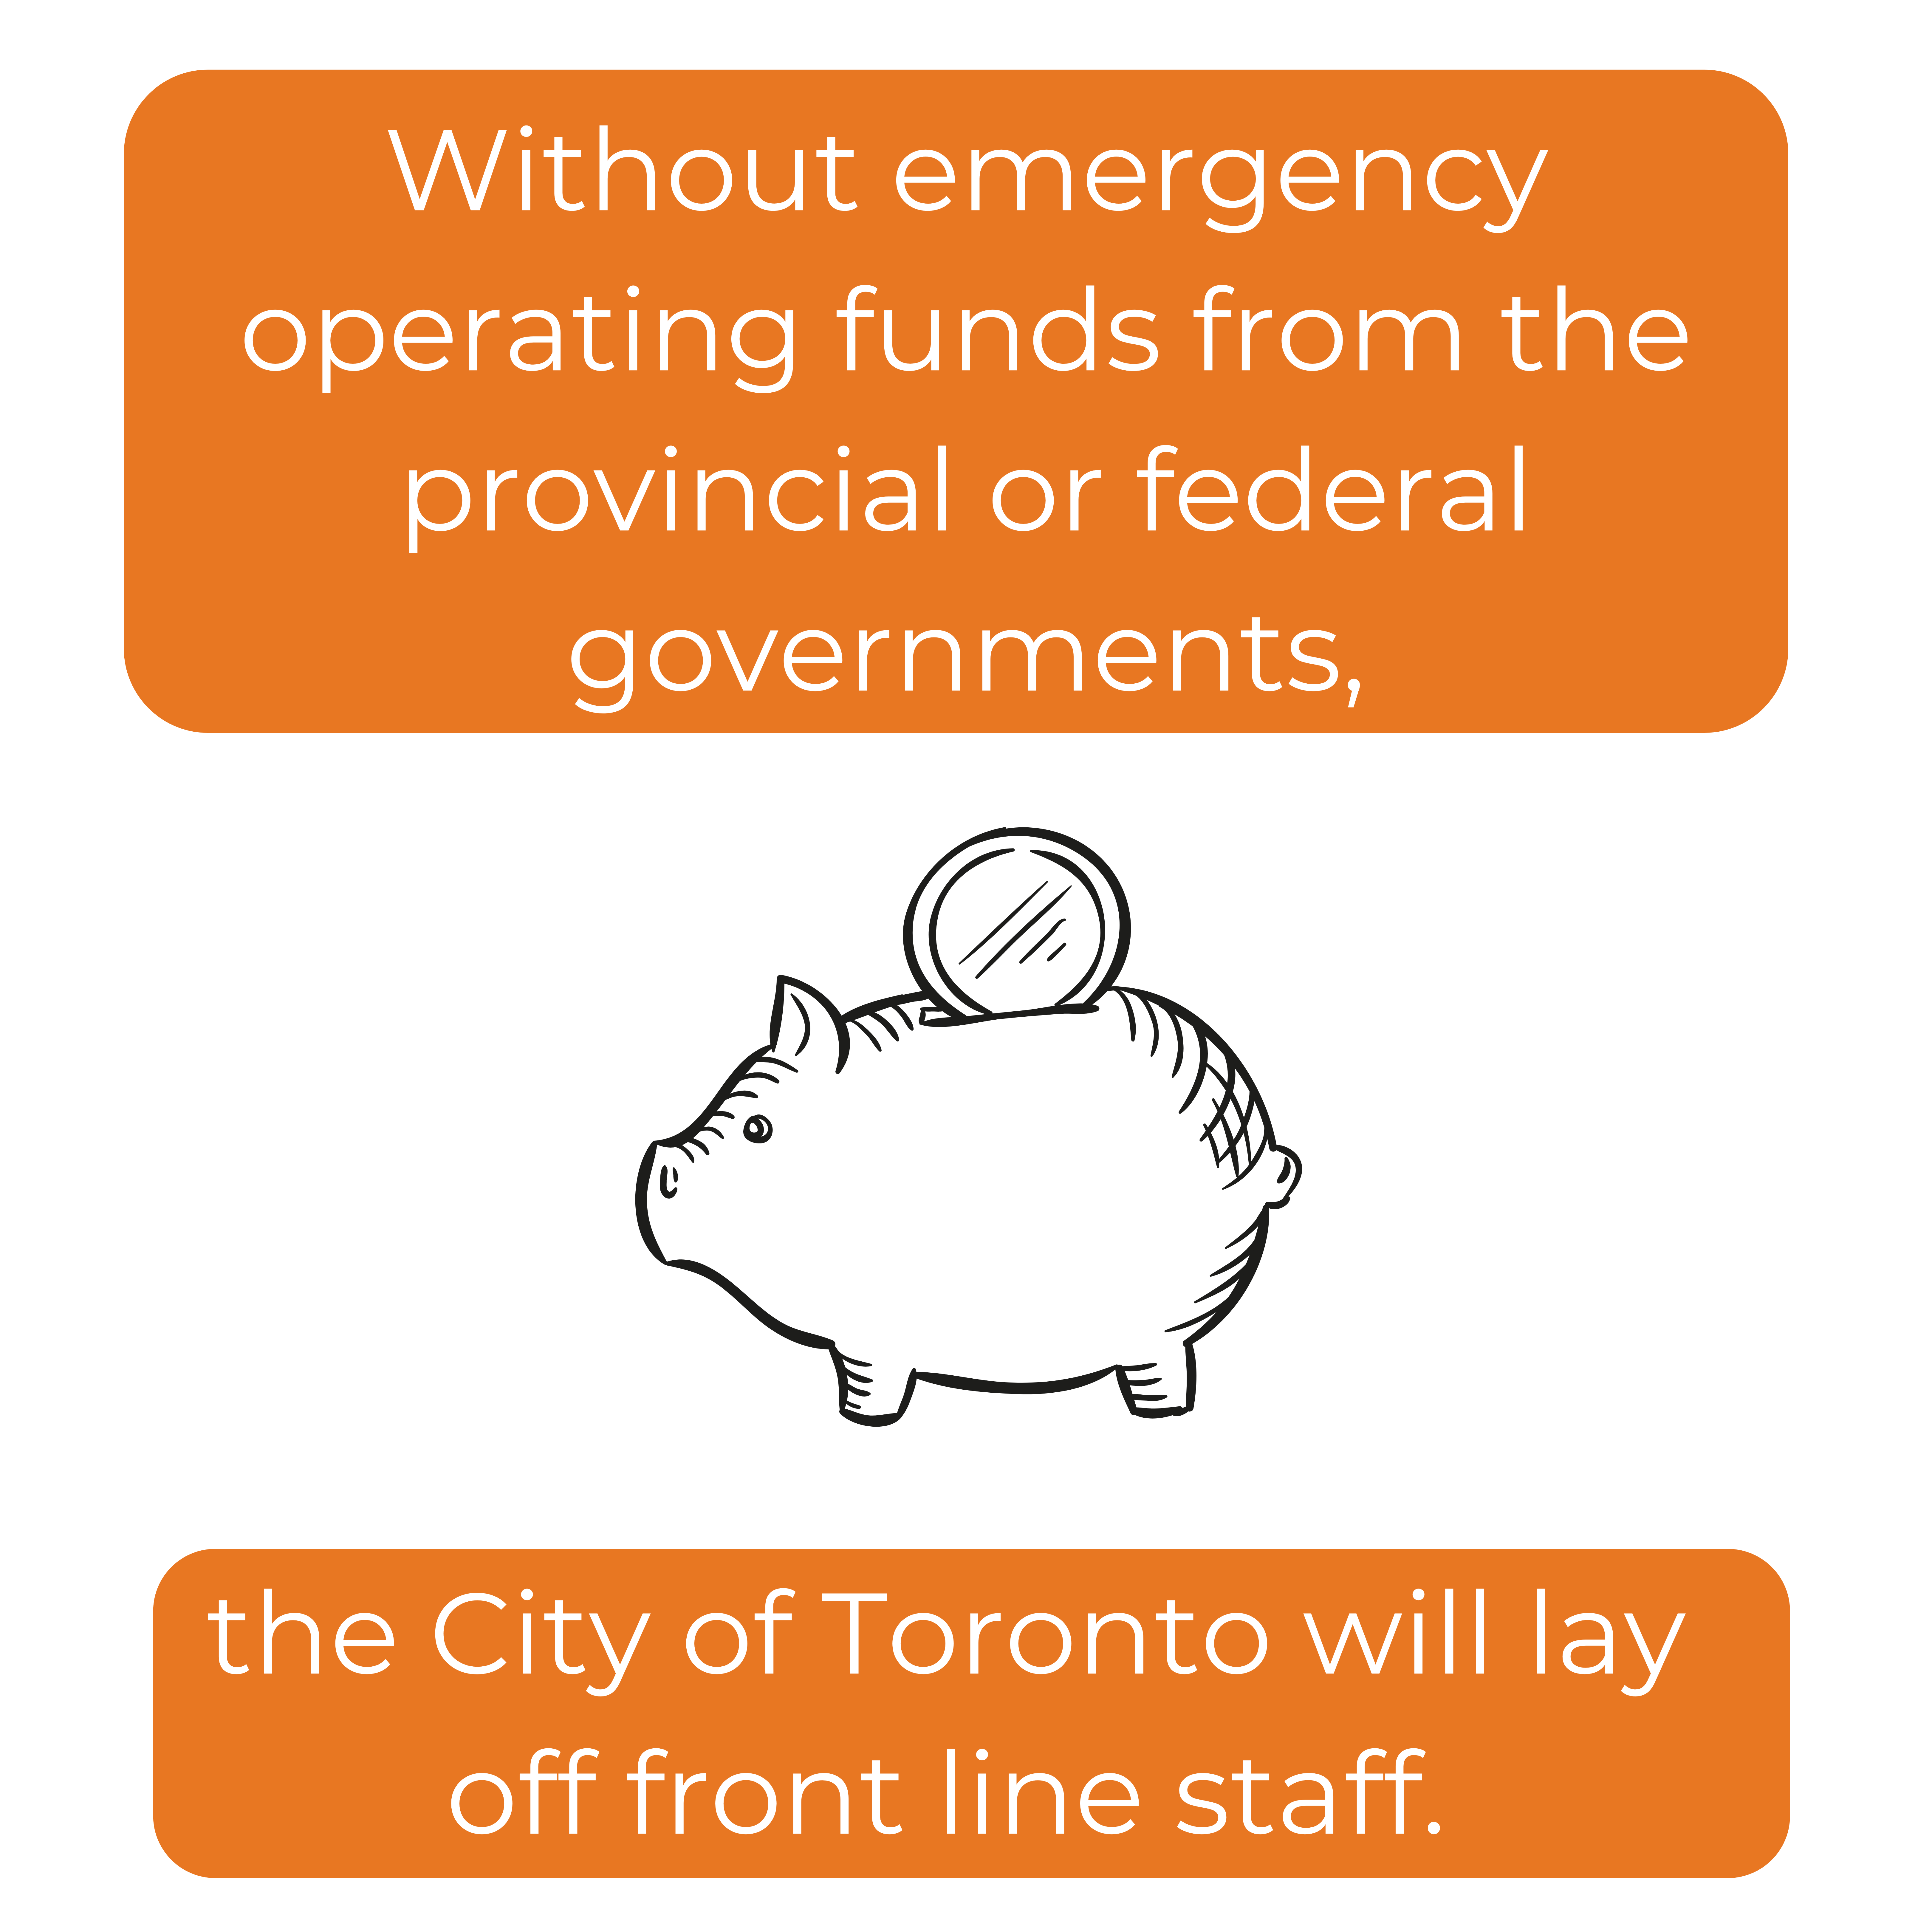 Without emergency operating funds from the provincial or federal governments, the city will lay off  front line staff.,